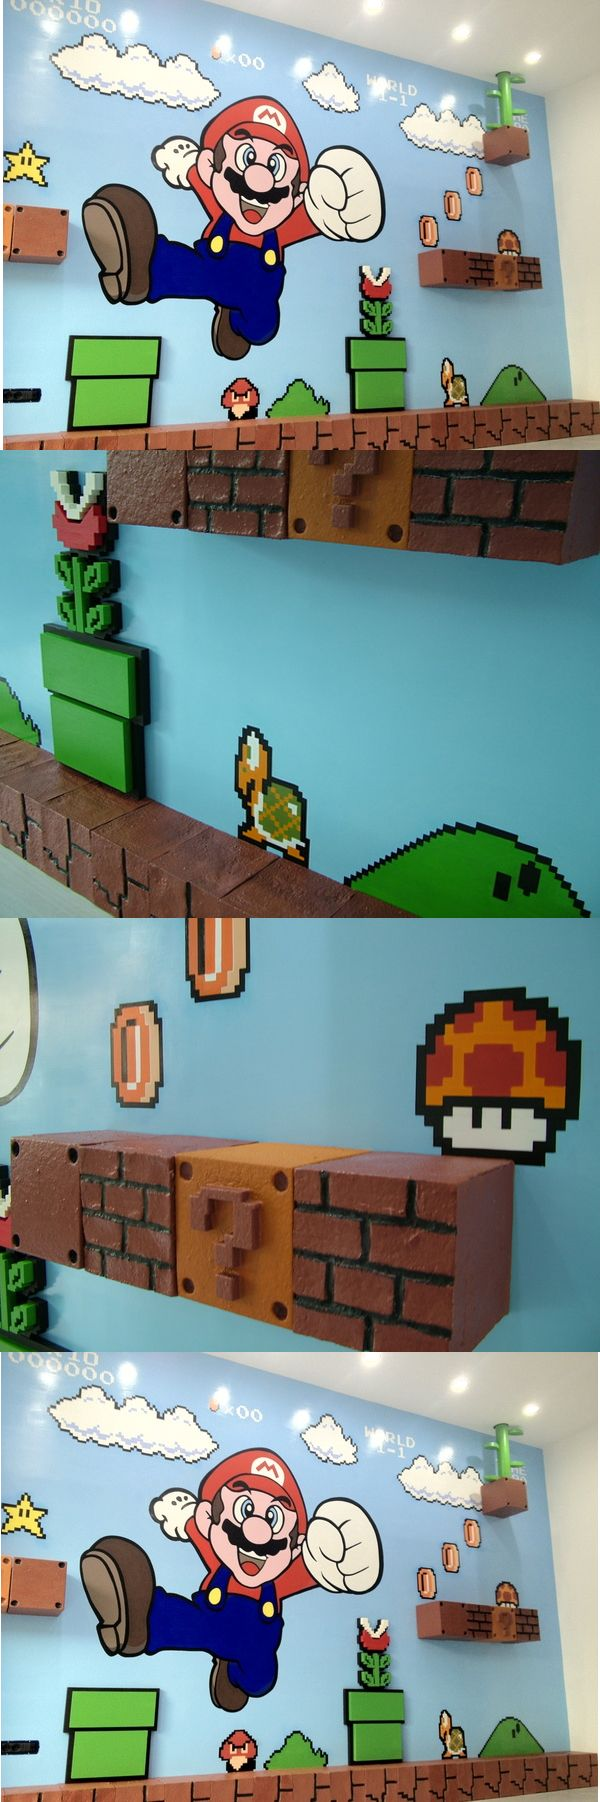 Amazing 3D Super Mario Bros Mural 6                                                                                                                                                     More